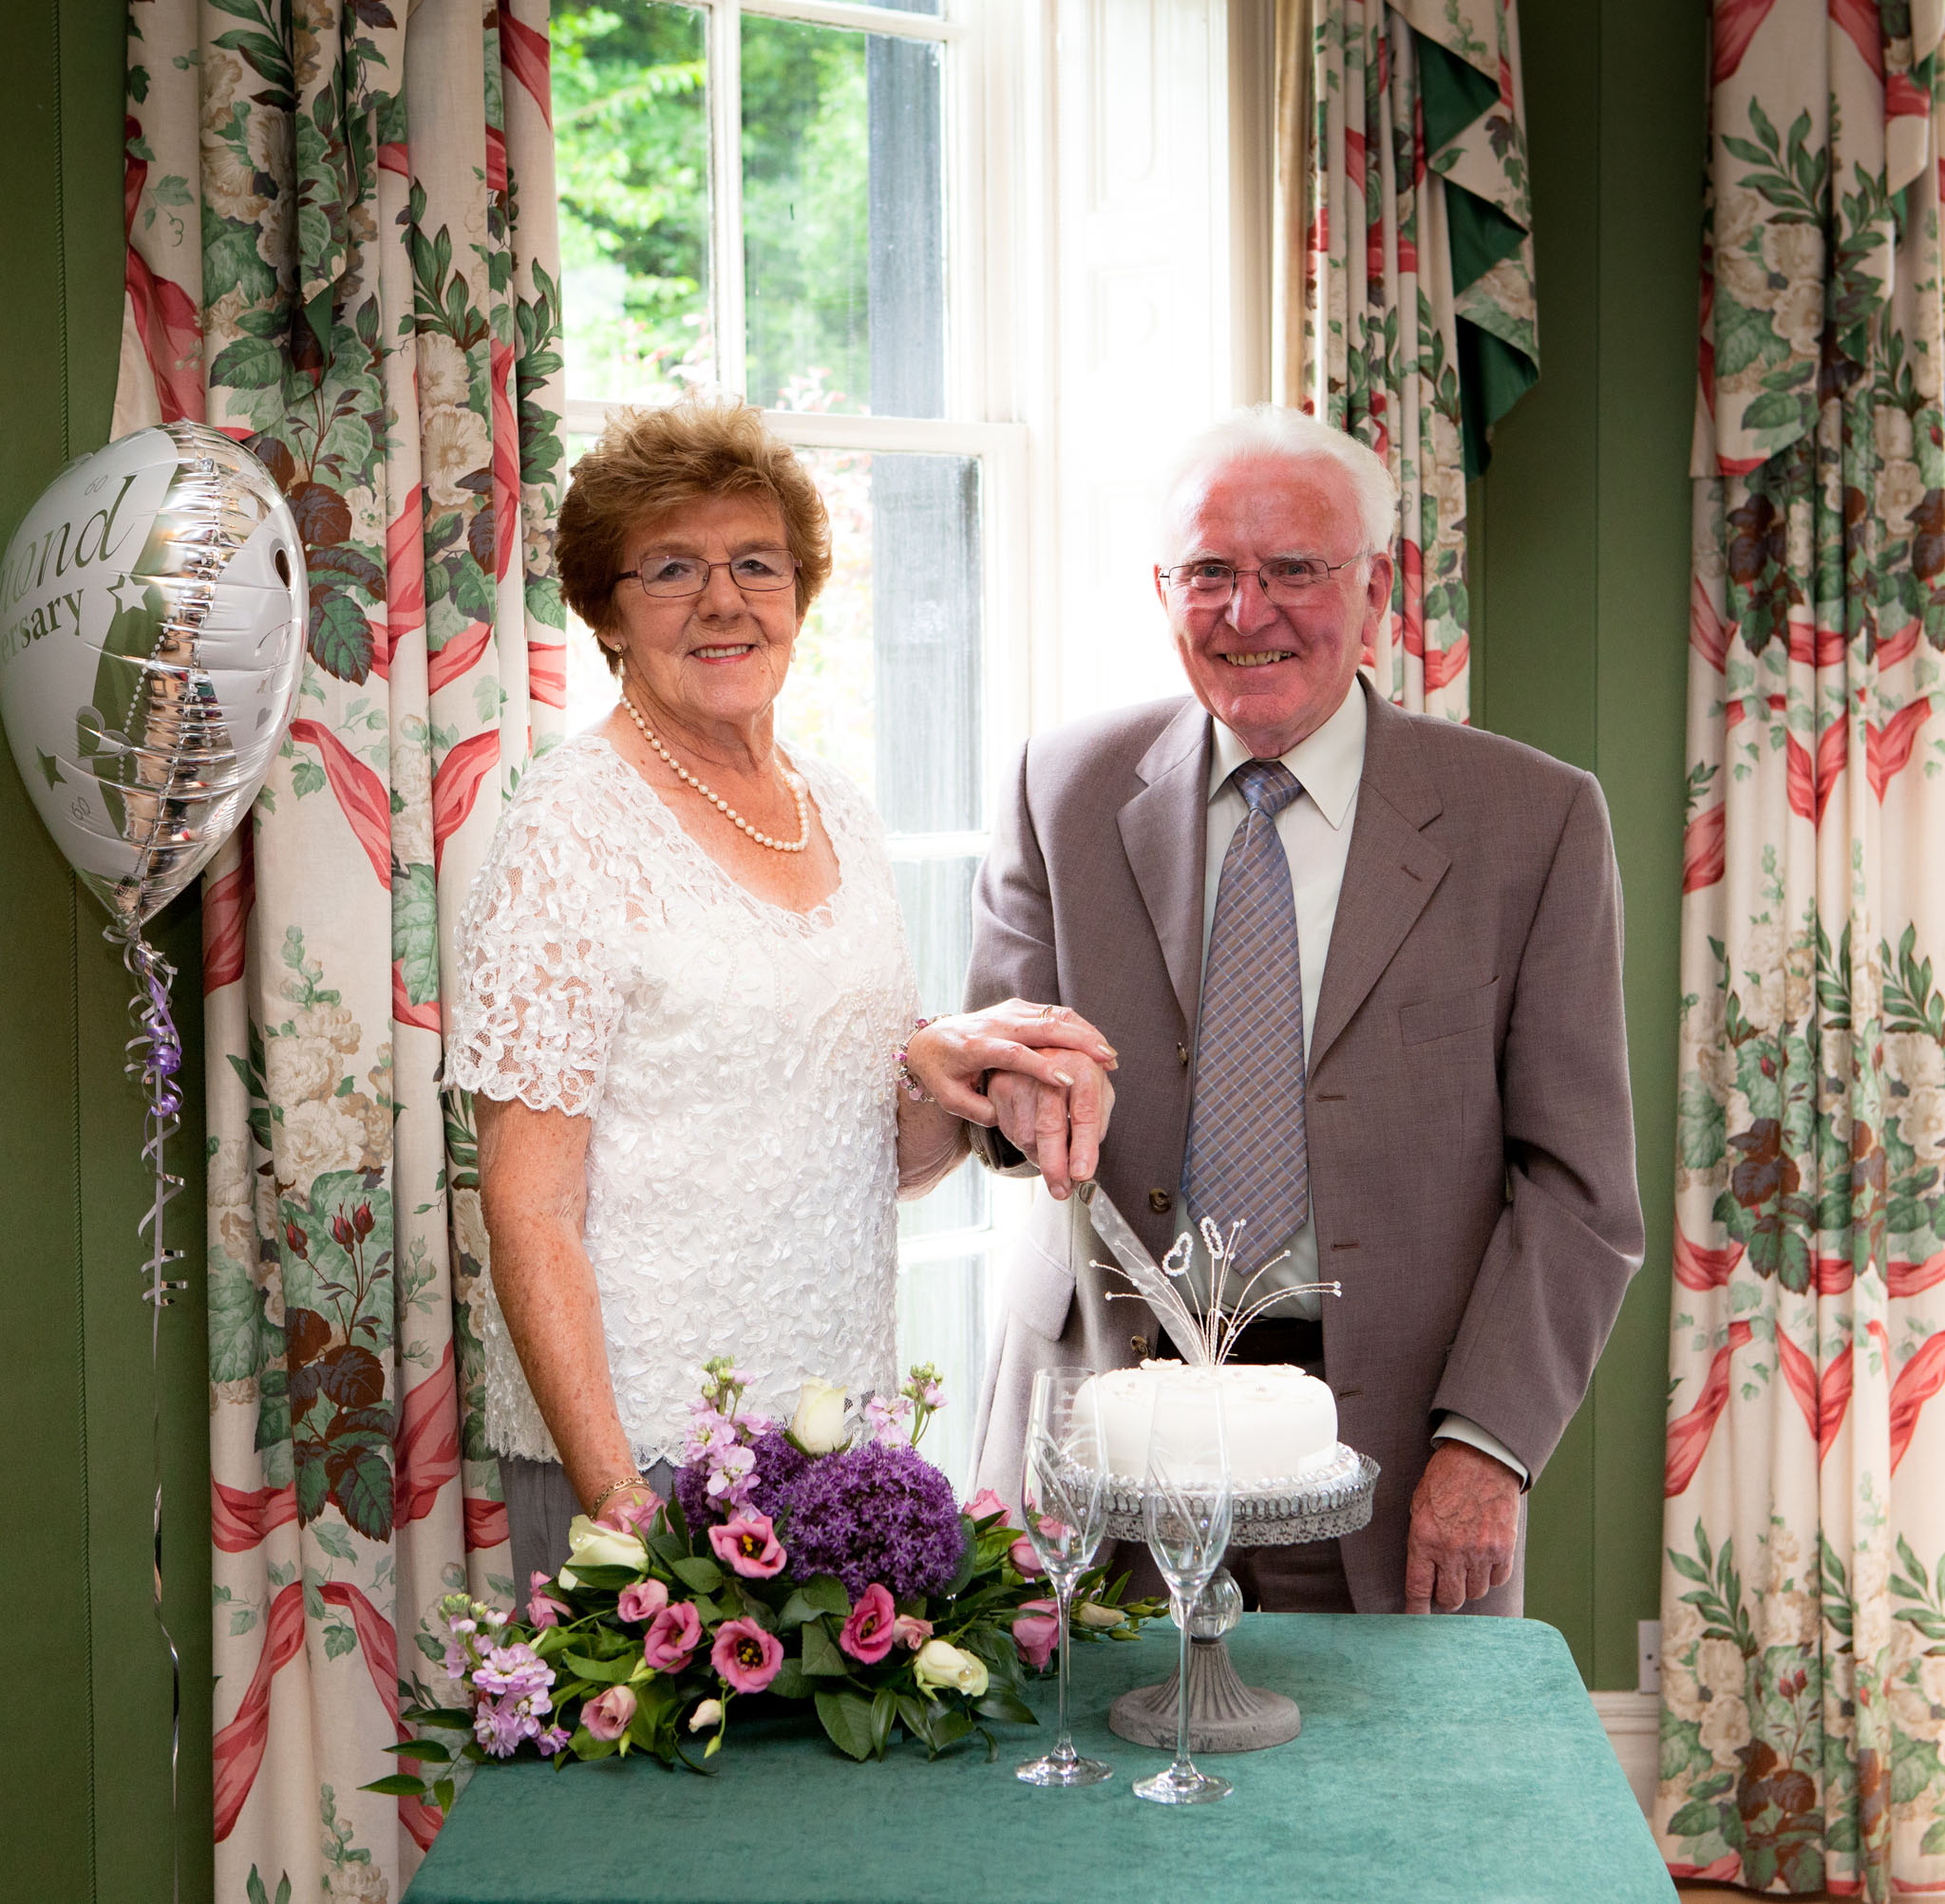 A Cheshire couple celebrate their diamond wedding at Statham Lodge, Lymm, Cheshire